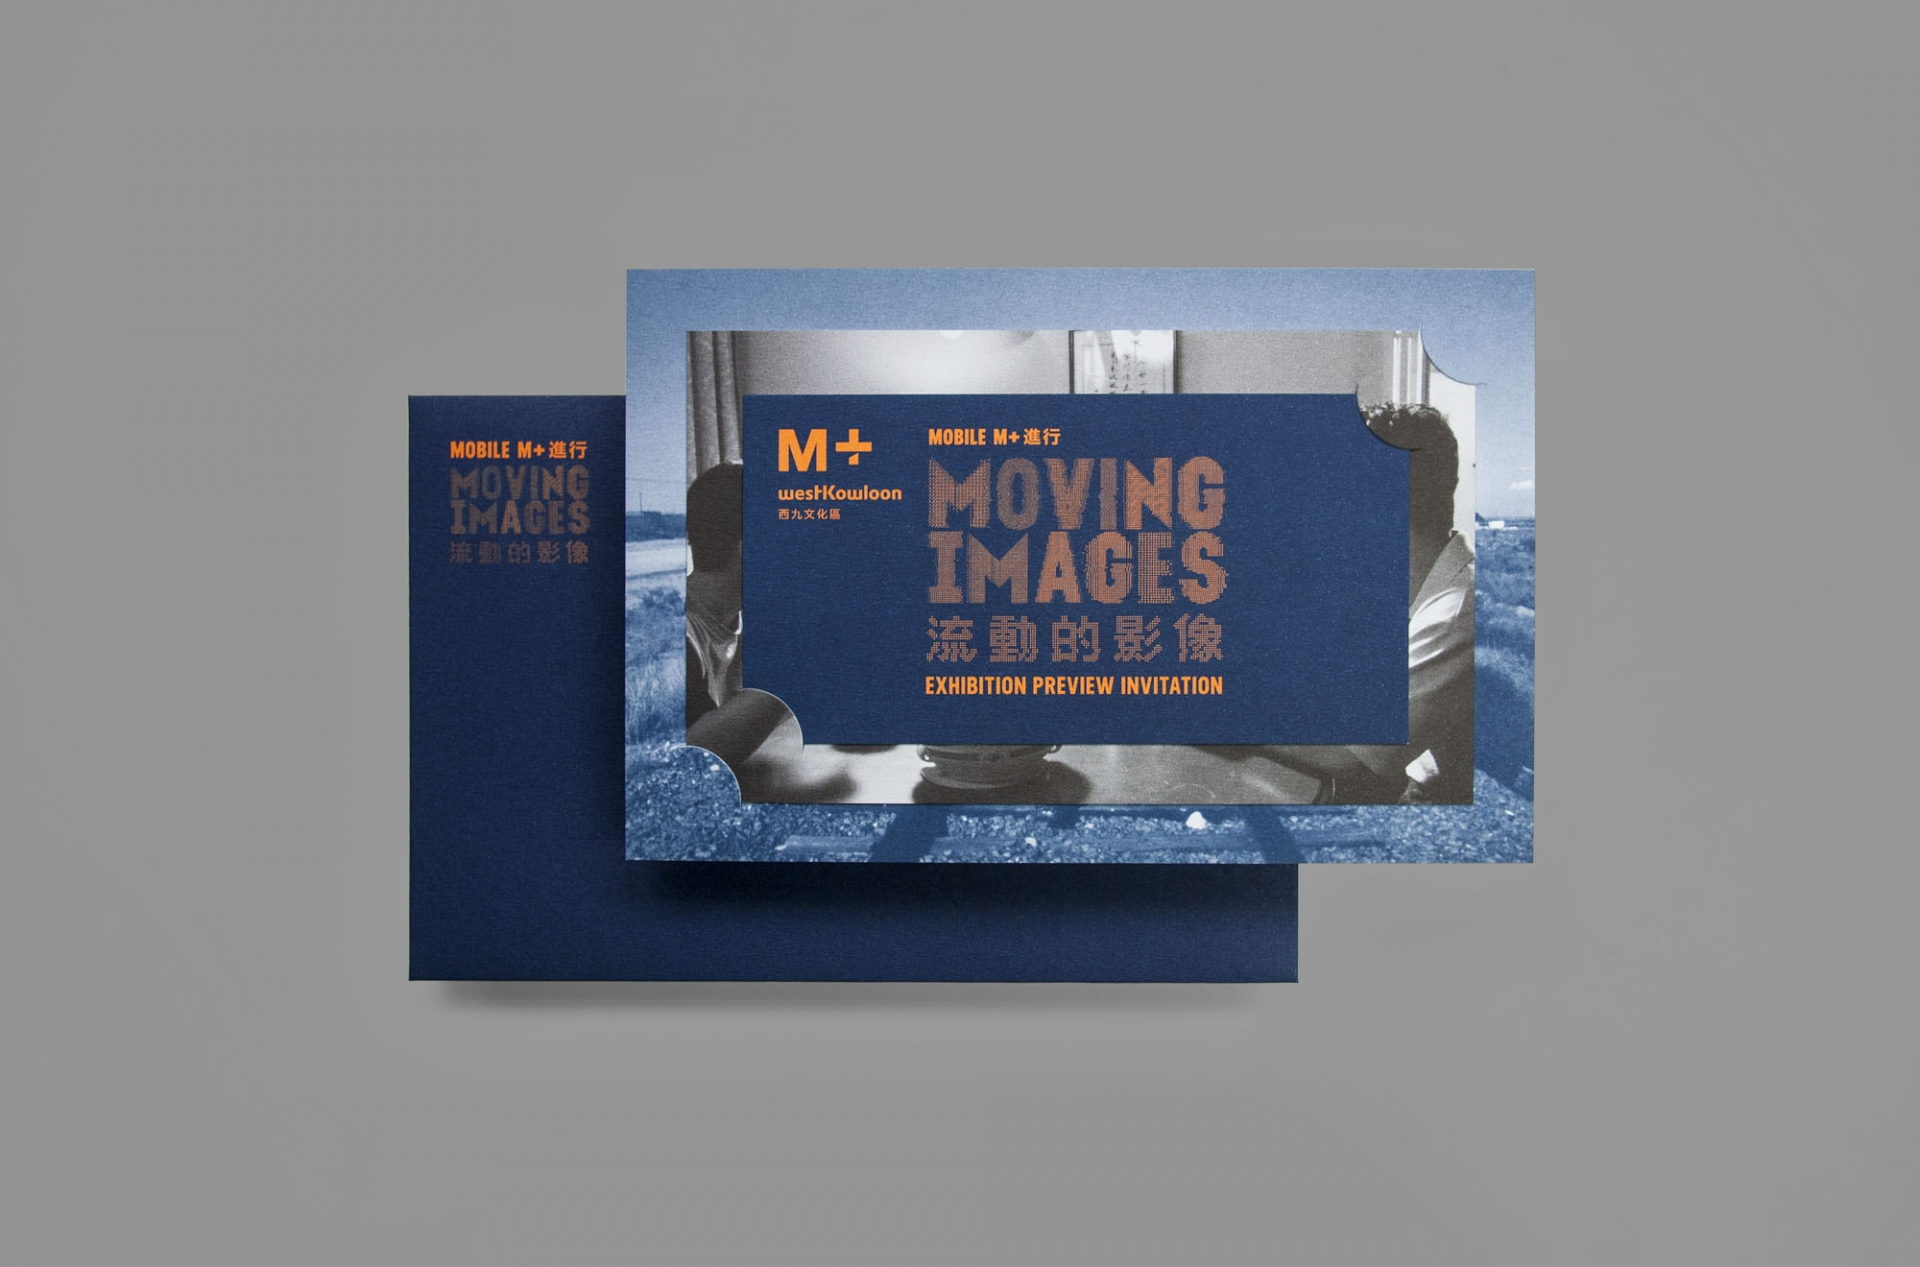 Good Morning Design Mobile M+: Moving Images